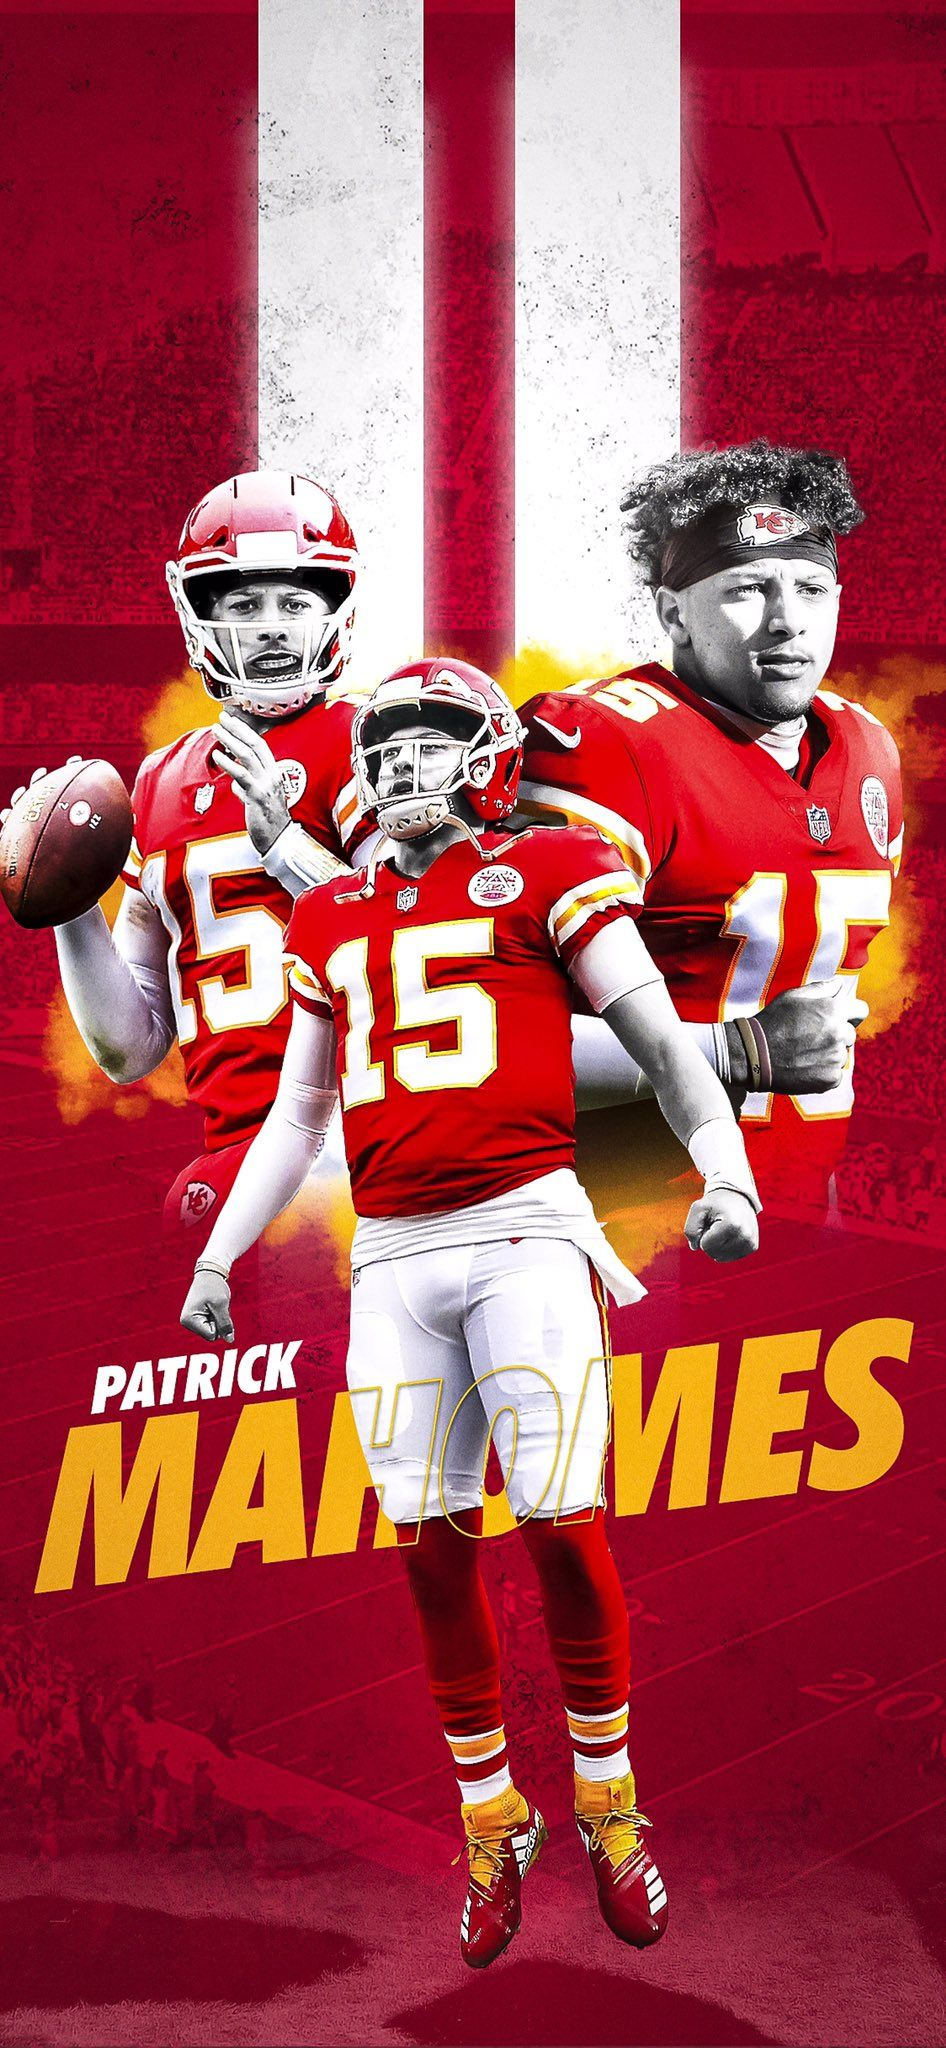 Mahomes Mobile Wallpaper In 2020 Chiefs Football Chiefs Wallpaper Kc Chiefs Football